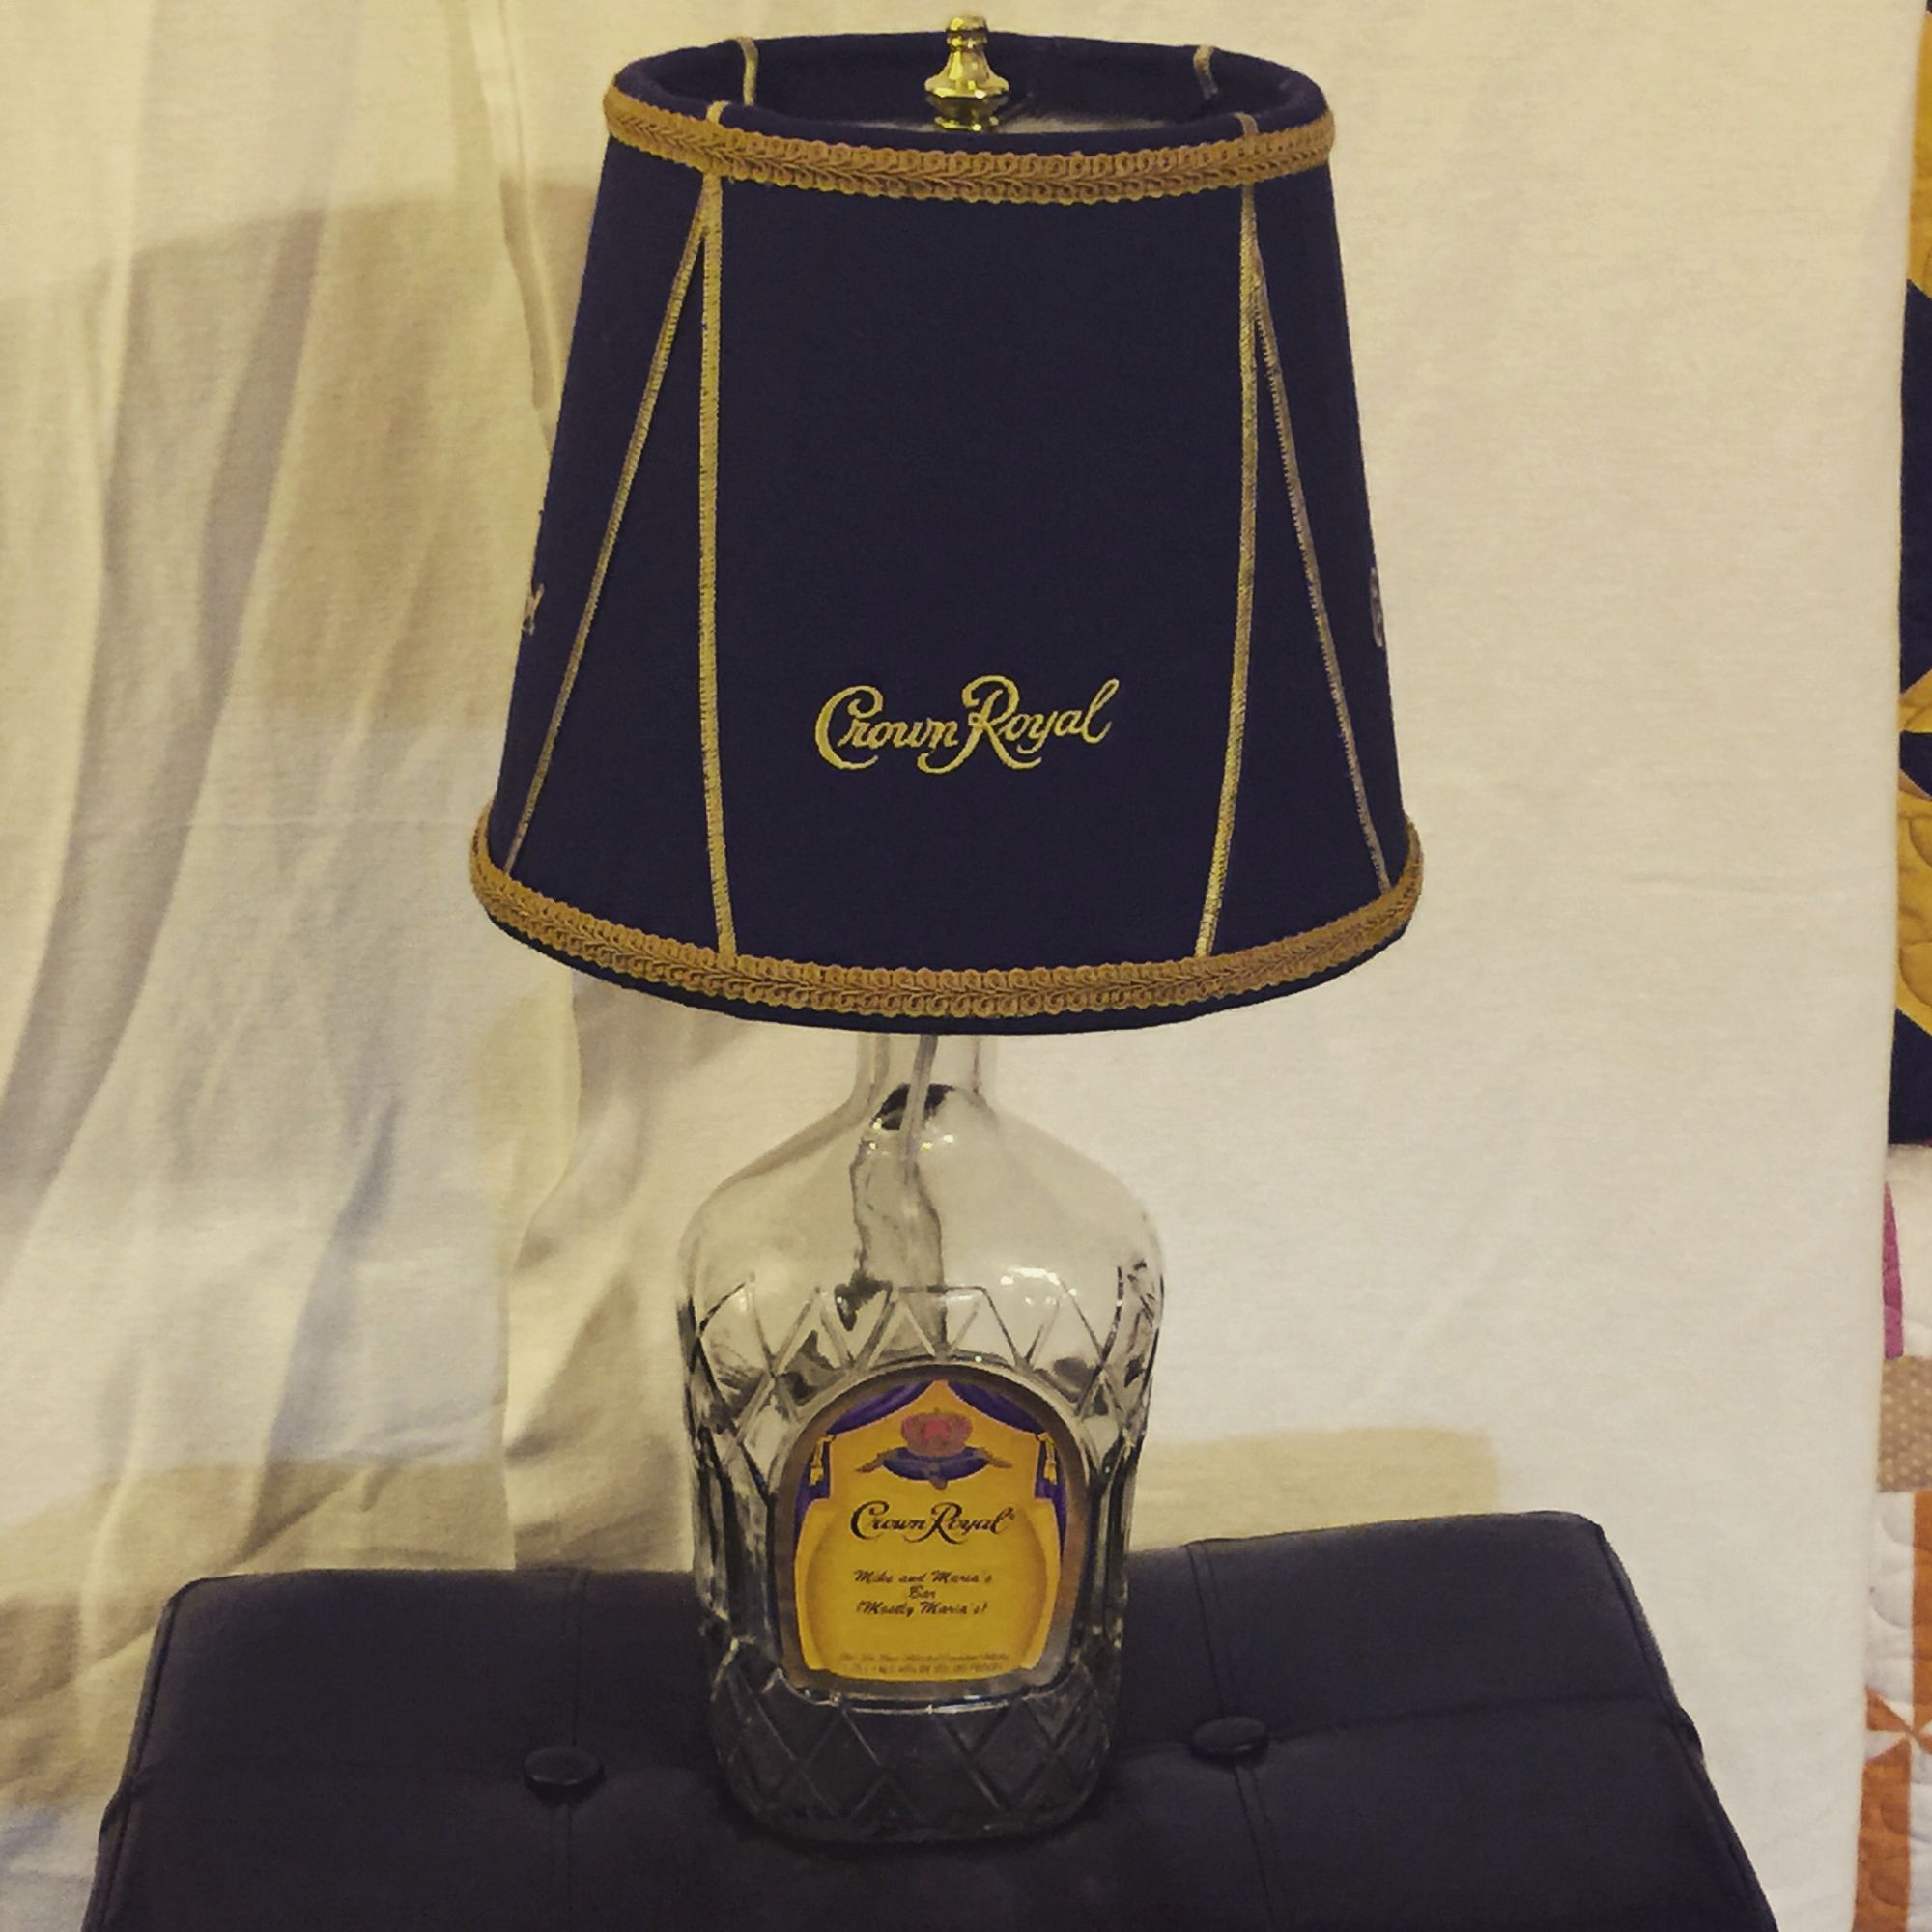 My second Crown Royal Lamp. It takes 5 bags to make al 10